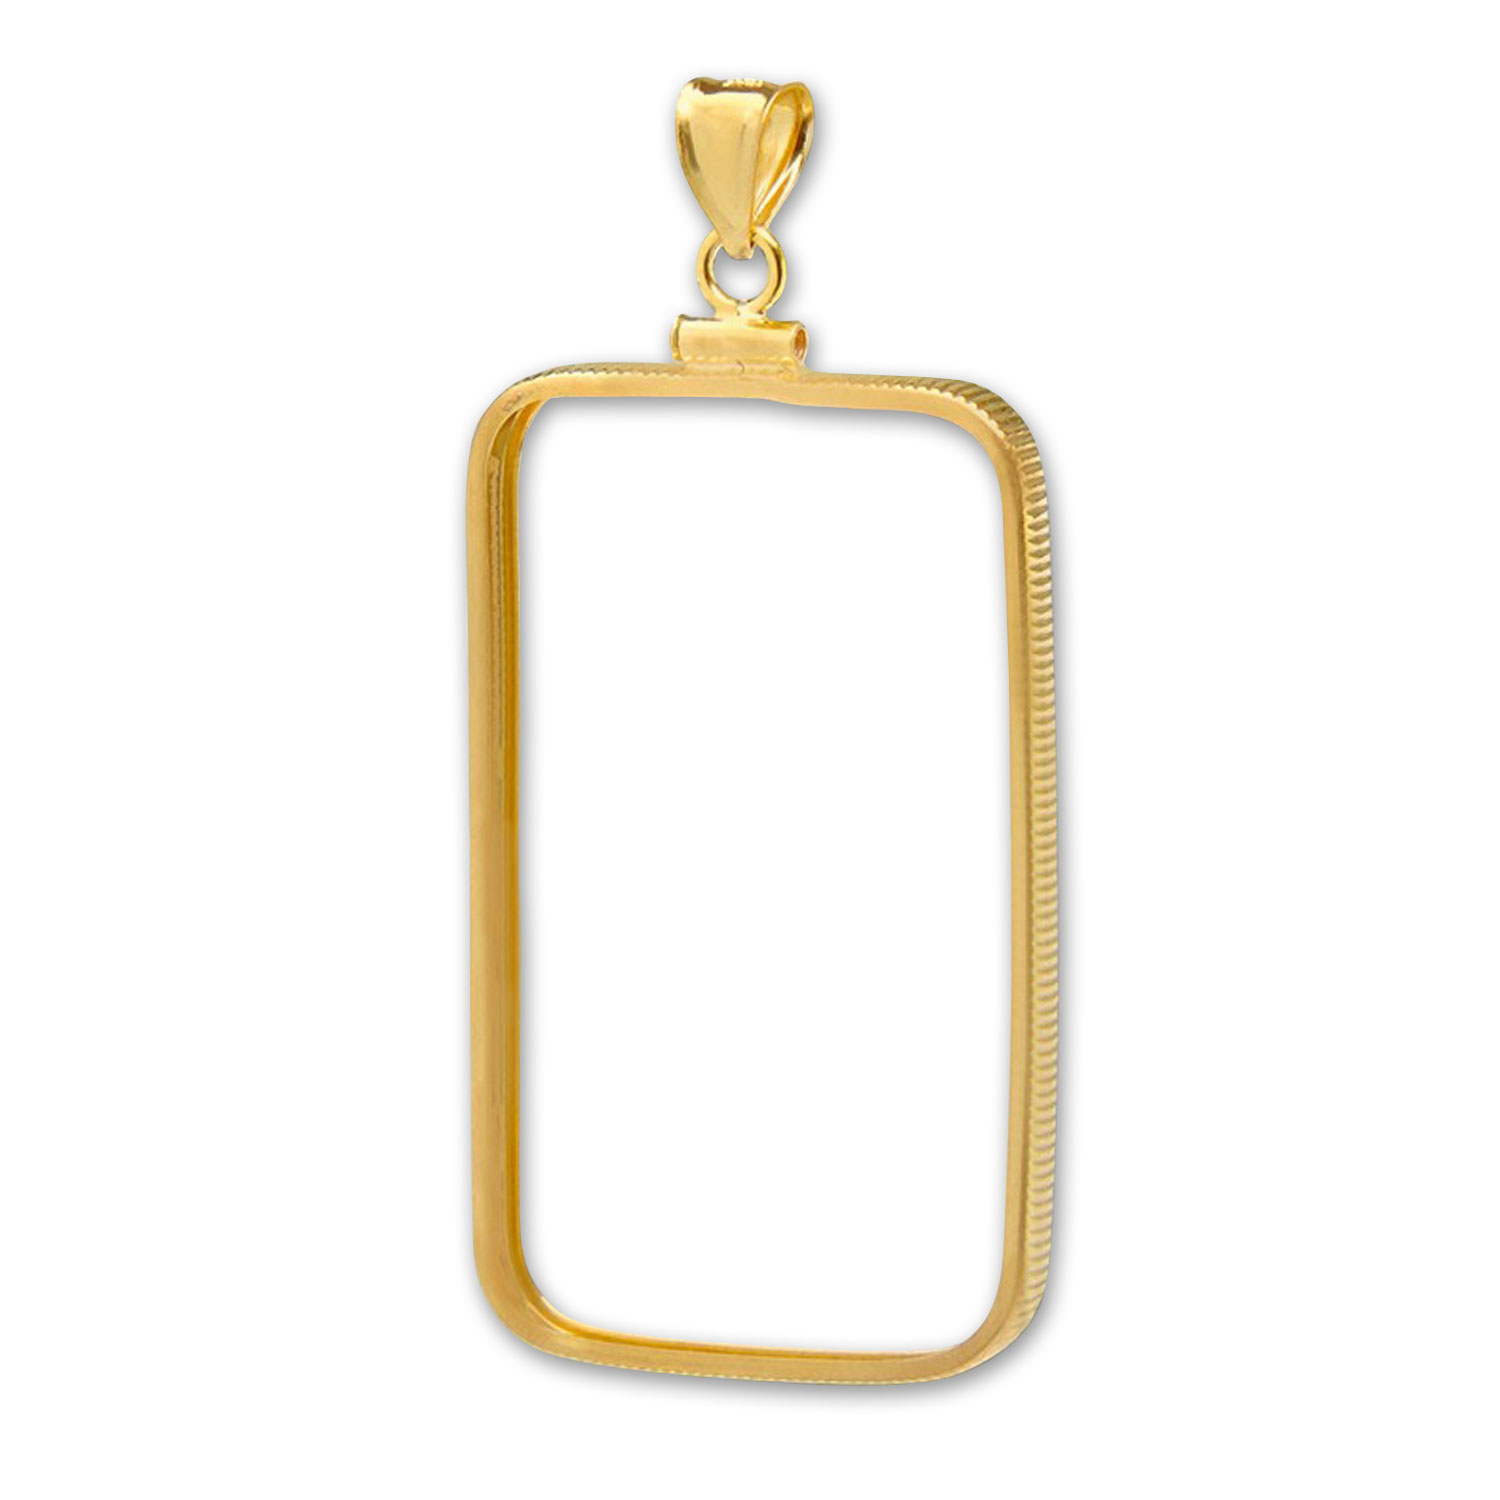 14K Gold Screw-Top Plain-Front Bezel (2.5 gram Gold Bar)